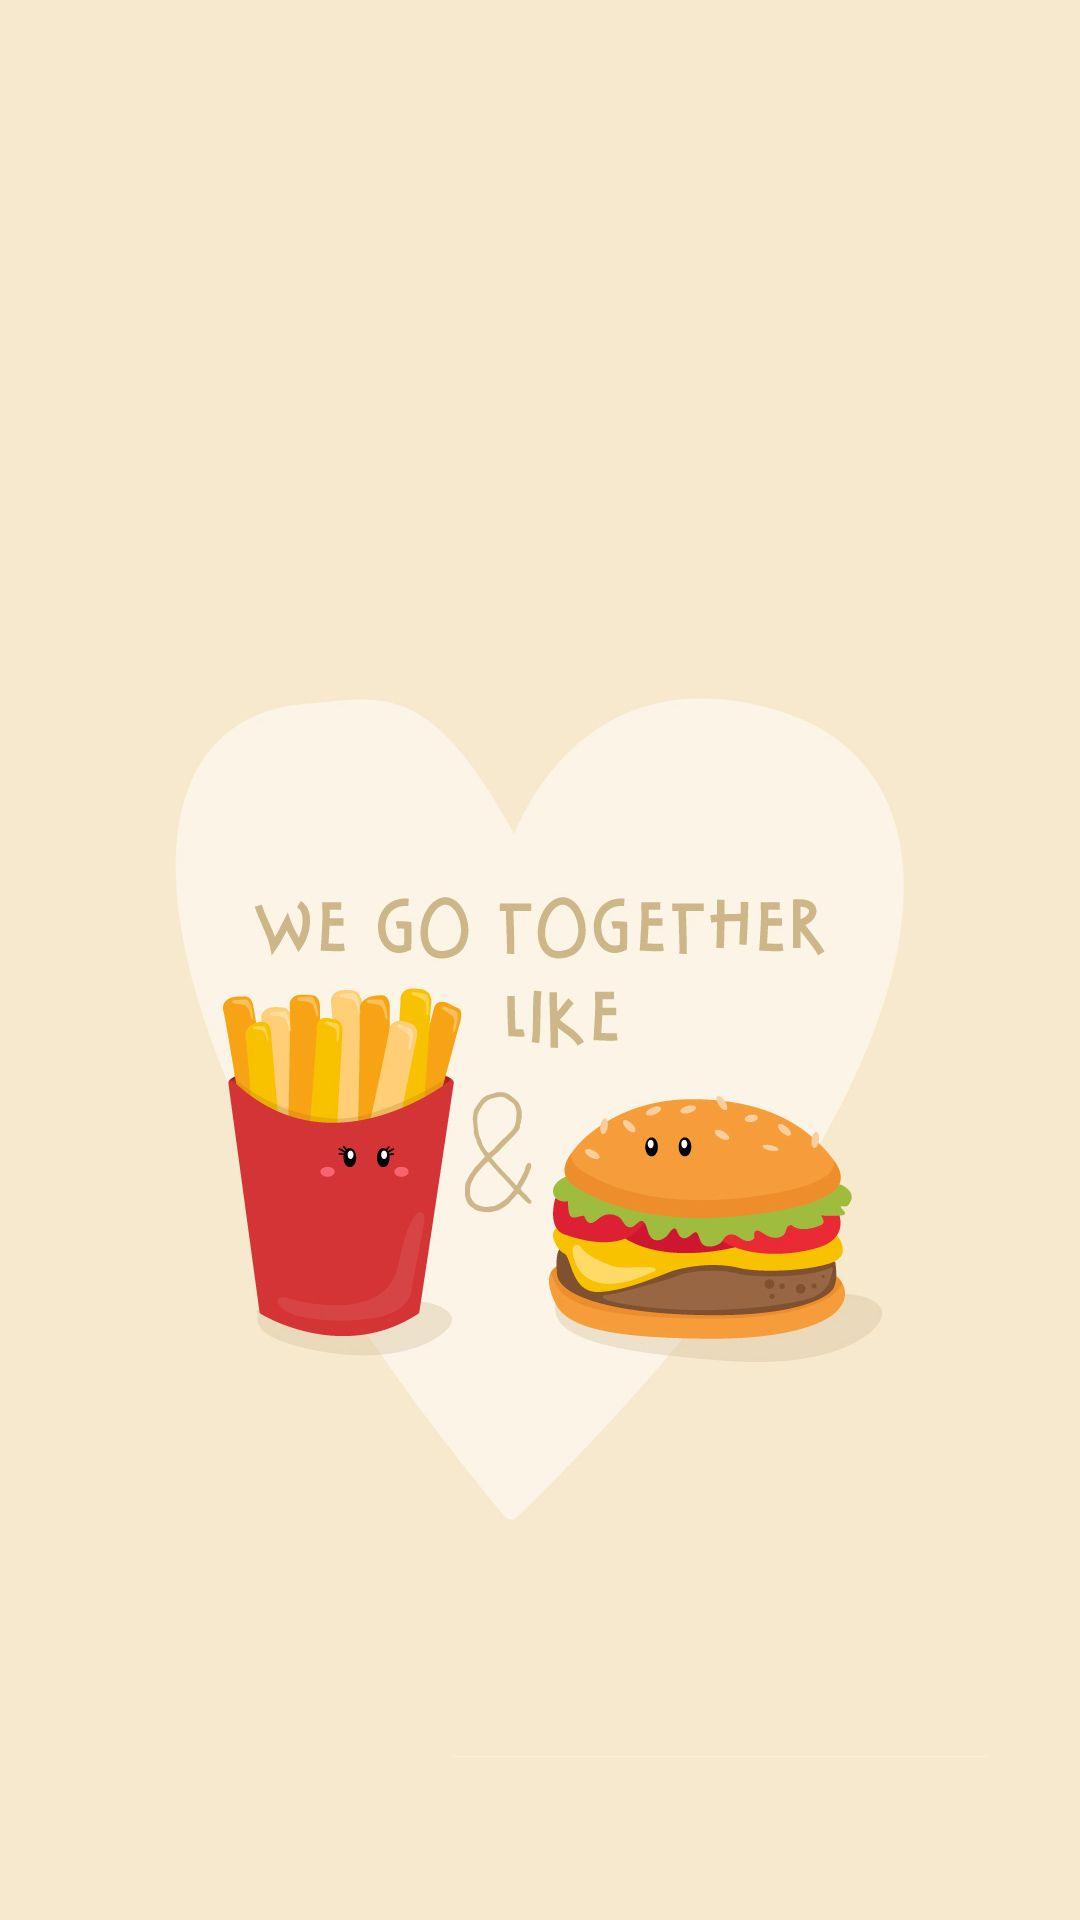 1080x1920 We Go Together Like Burger And Fries iPhone 6+ HD Wallpaper - http ...